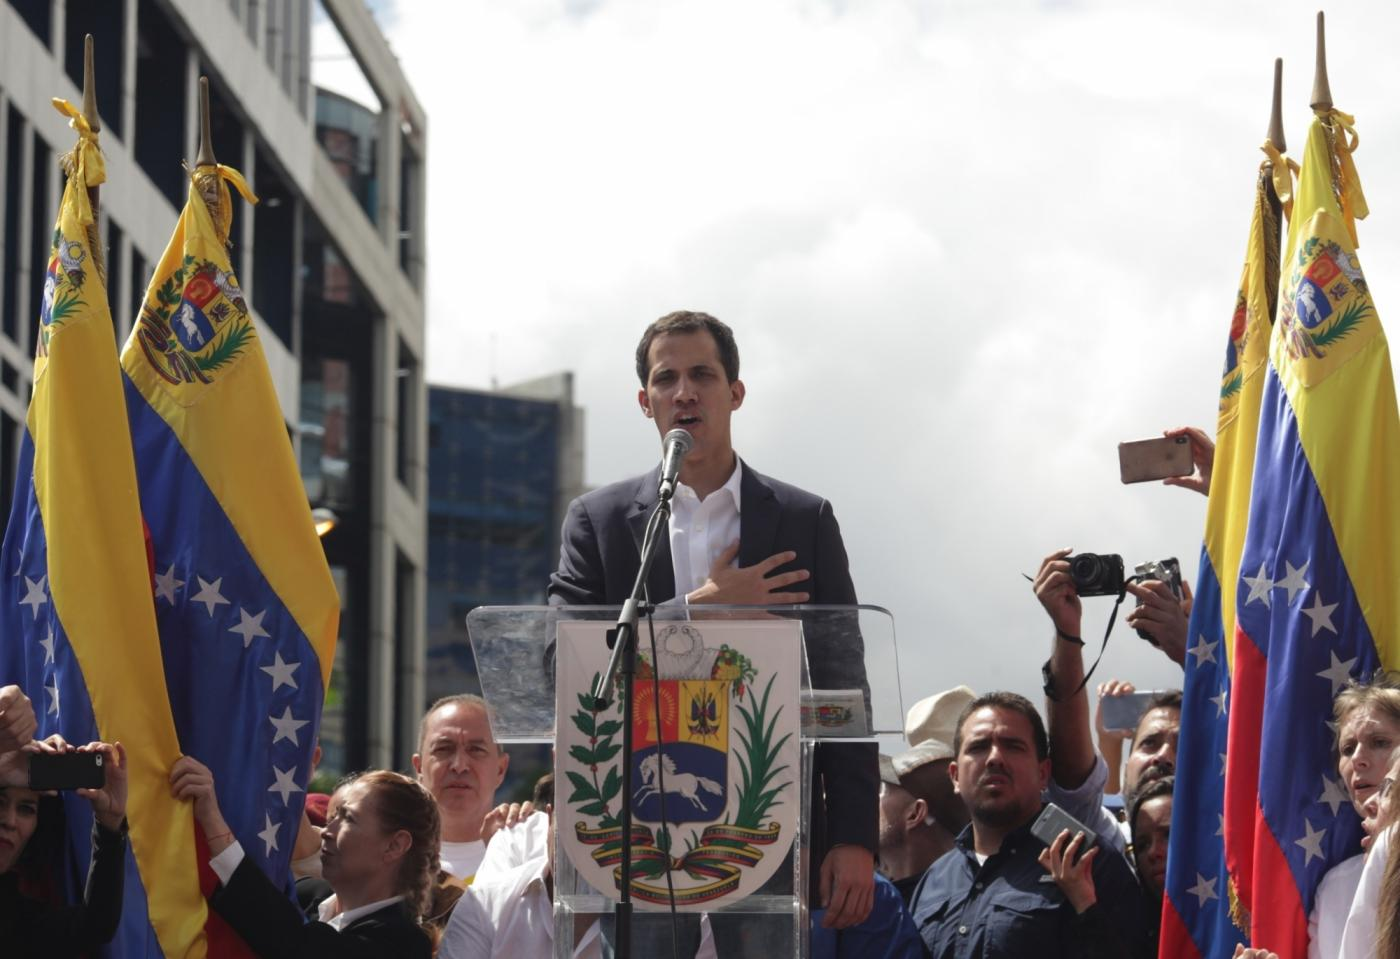 """Juan Guaido (C), head of the opposition-controlled National Assembly, delivers a speech at the Francisco de Miranda avenue, in Caracas, Venezuela, on Jan. 23, 2019. Venezuelan President Nicolas Maduro on Wednesday announced he was severing """"diplomatic and political"""" ties with the United States after the U.S. authorities recognized the opposition leader Juan Guaido as the nation's interim president. (Xinhua/Boris Vergara/IANS) by ."""